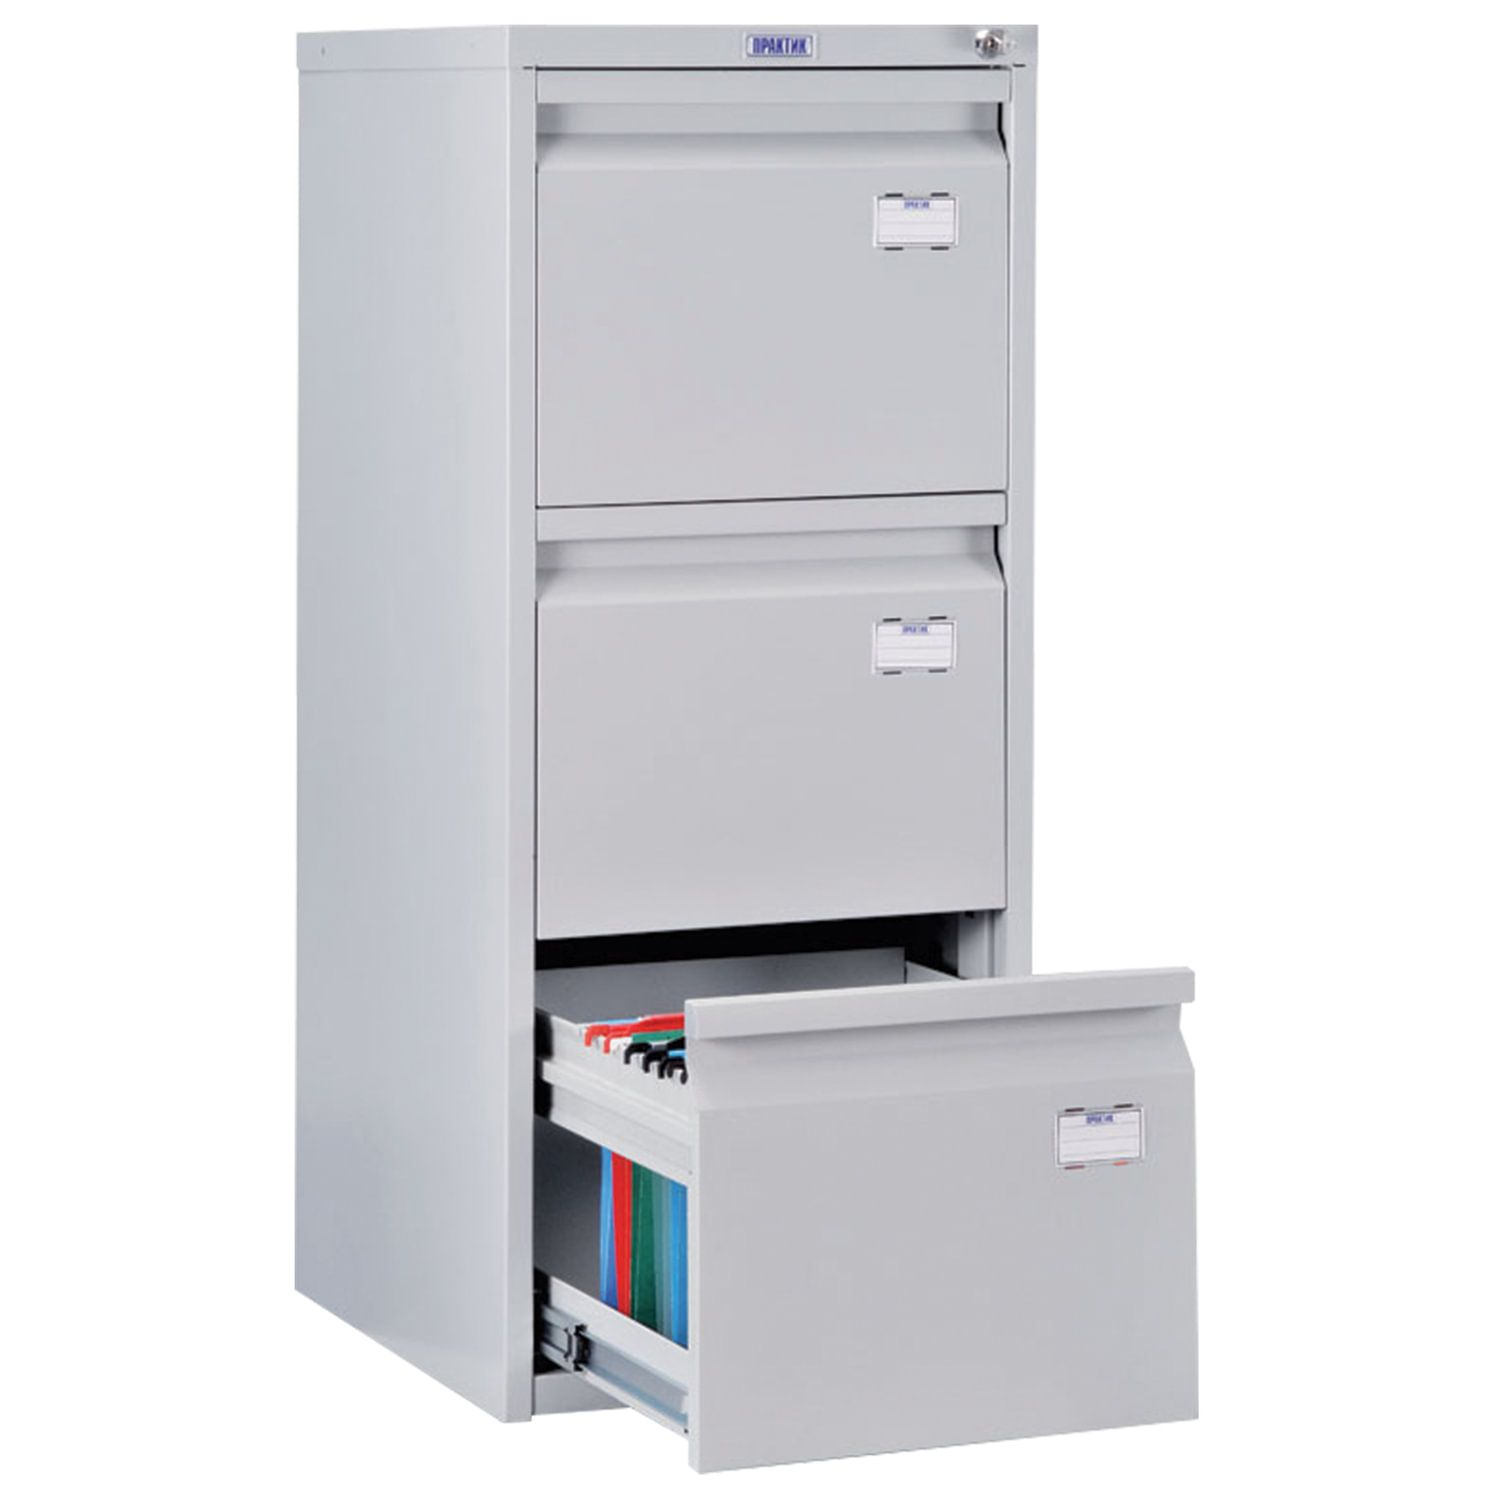 A-43 card cabinet, 995 x408 x485 mm, 3 boxes for 126 hanging folders, A4 folder format (NO FOLDERs)